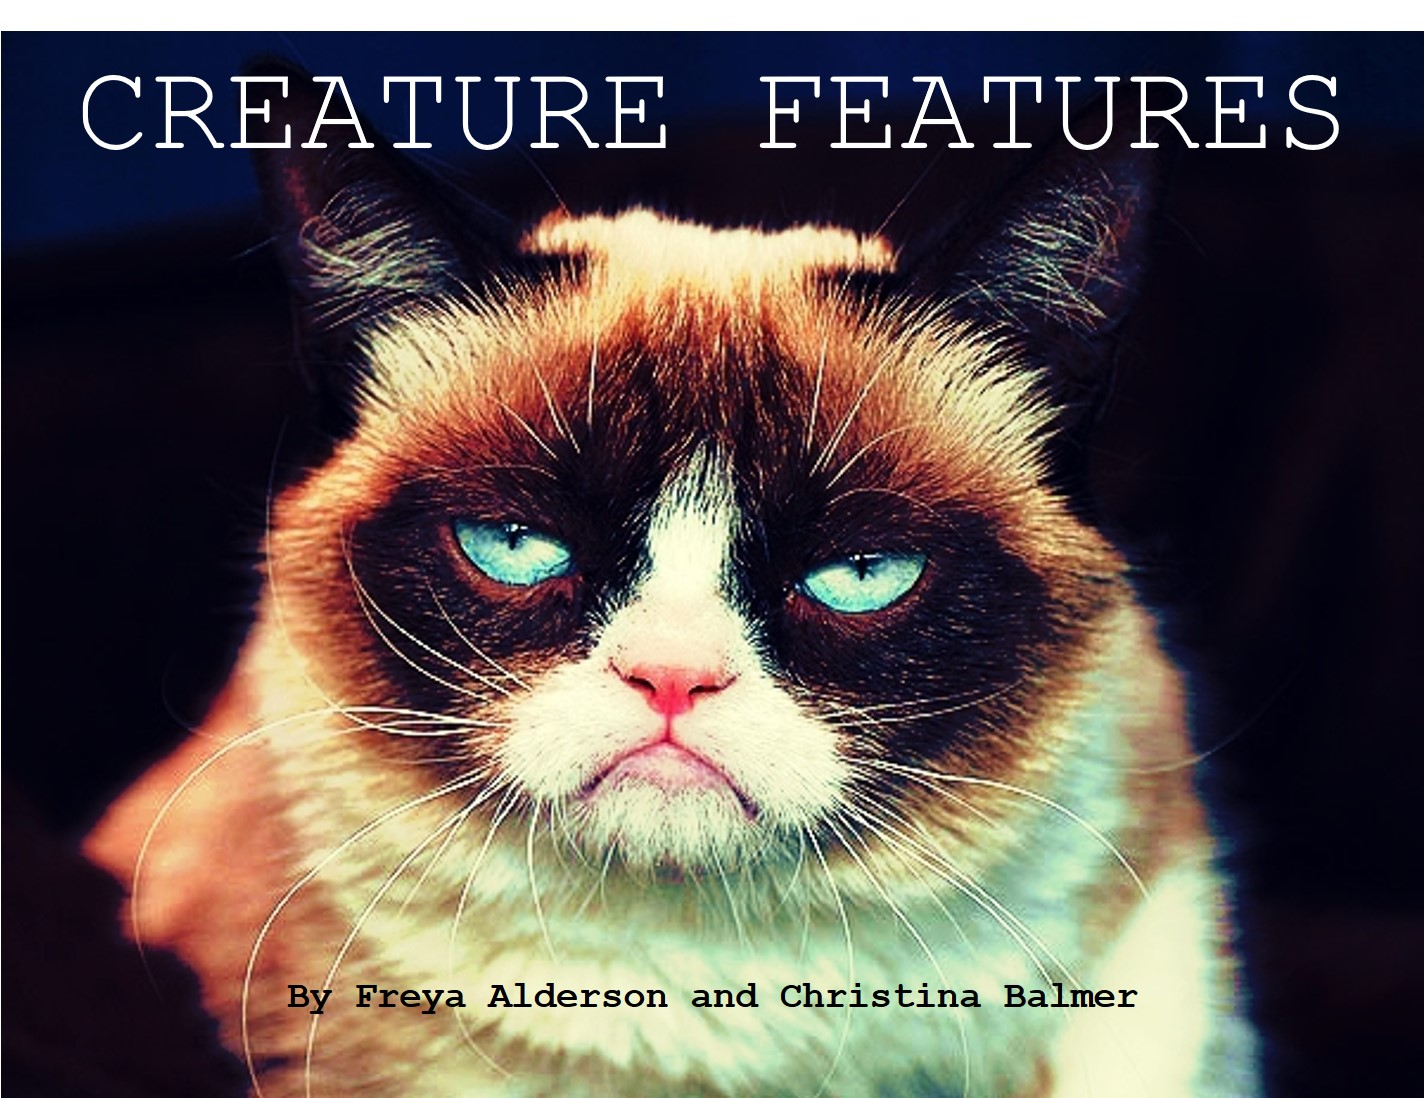 CREATURE FEATURES 2